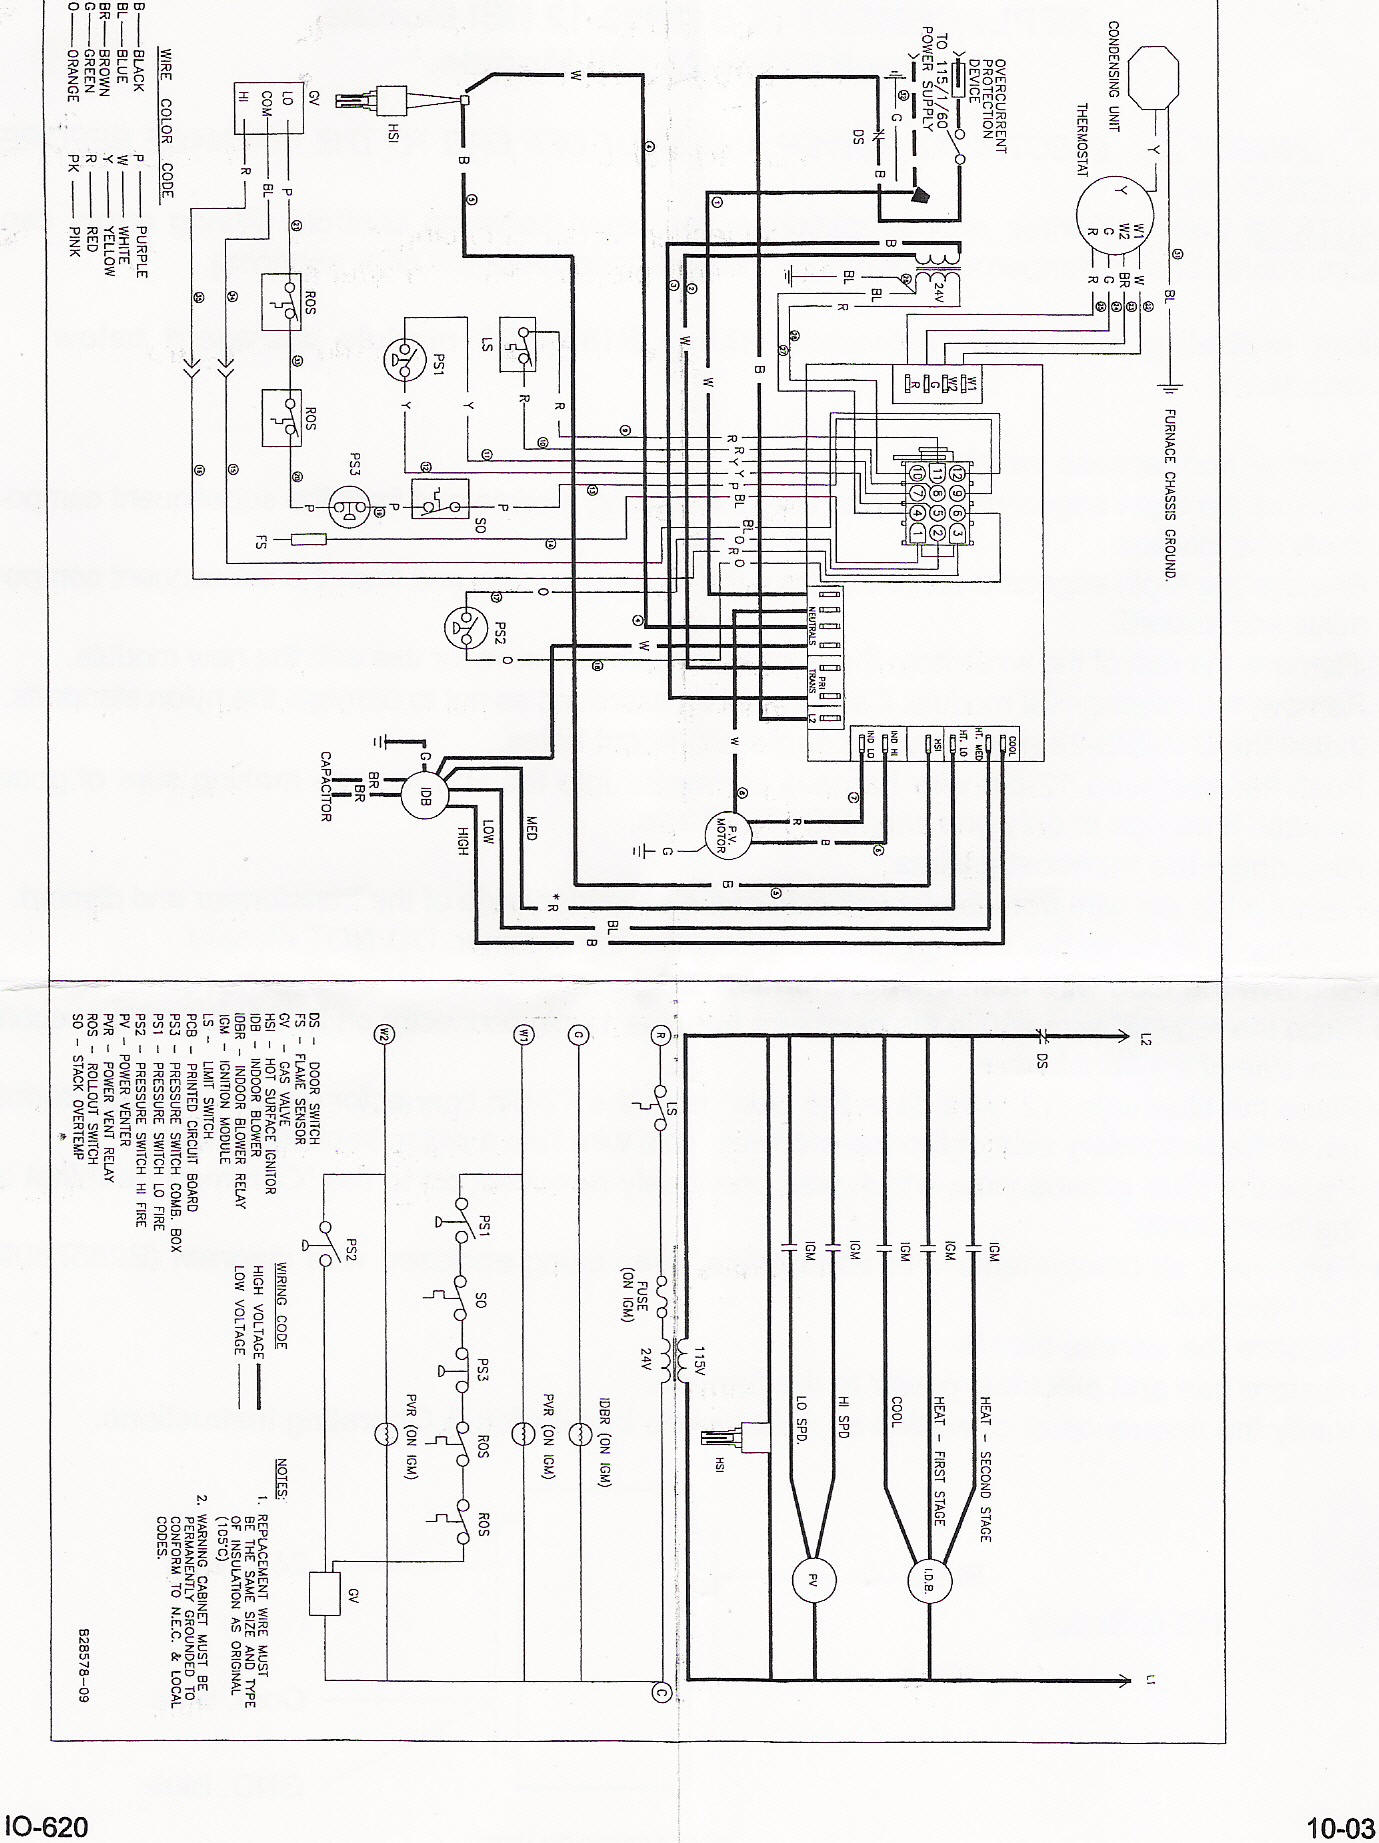 old carrier wiring diagrams with Heil Gas Furnace Control Board Wiring Diagram on Field Electrical Wiring For Chillers And AHU further Watch besides Electrical Wiring Frame furthermore Carrier Humidifier Wiring Diagram further 535713 Aprilaire 500a Goodman Furnace Wiring Getting Pretty Desperate.